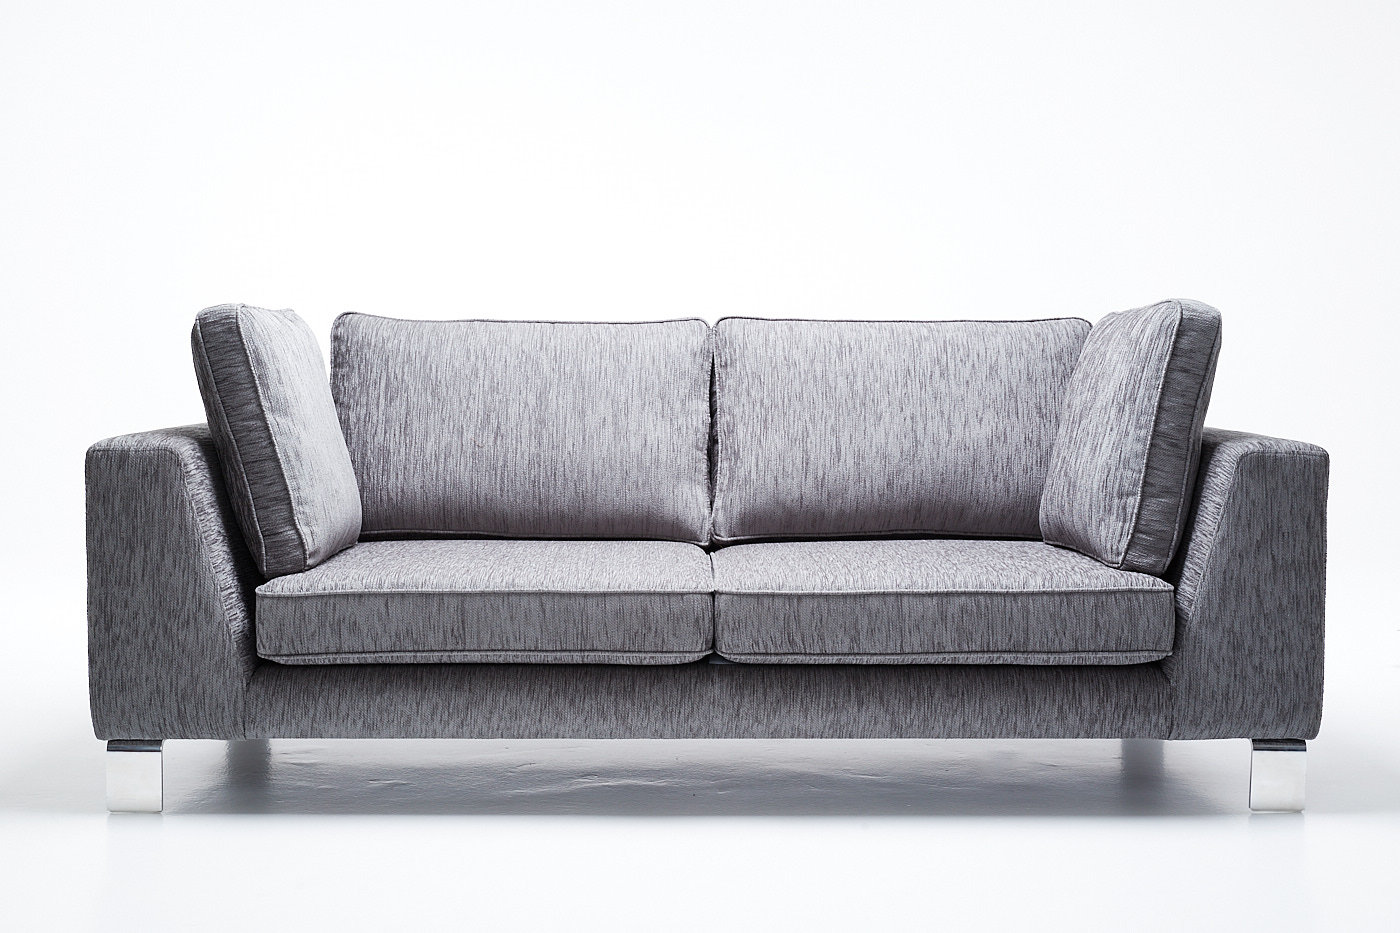 Wondrous Amalfi 2 5 Seater Sofa Right Uwap Interior Chair Design Uwaporg